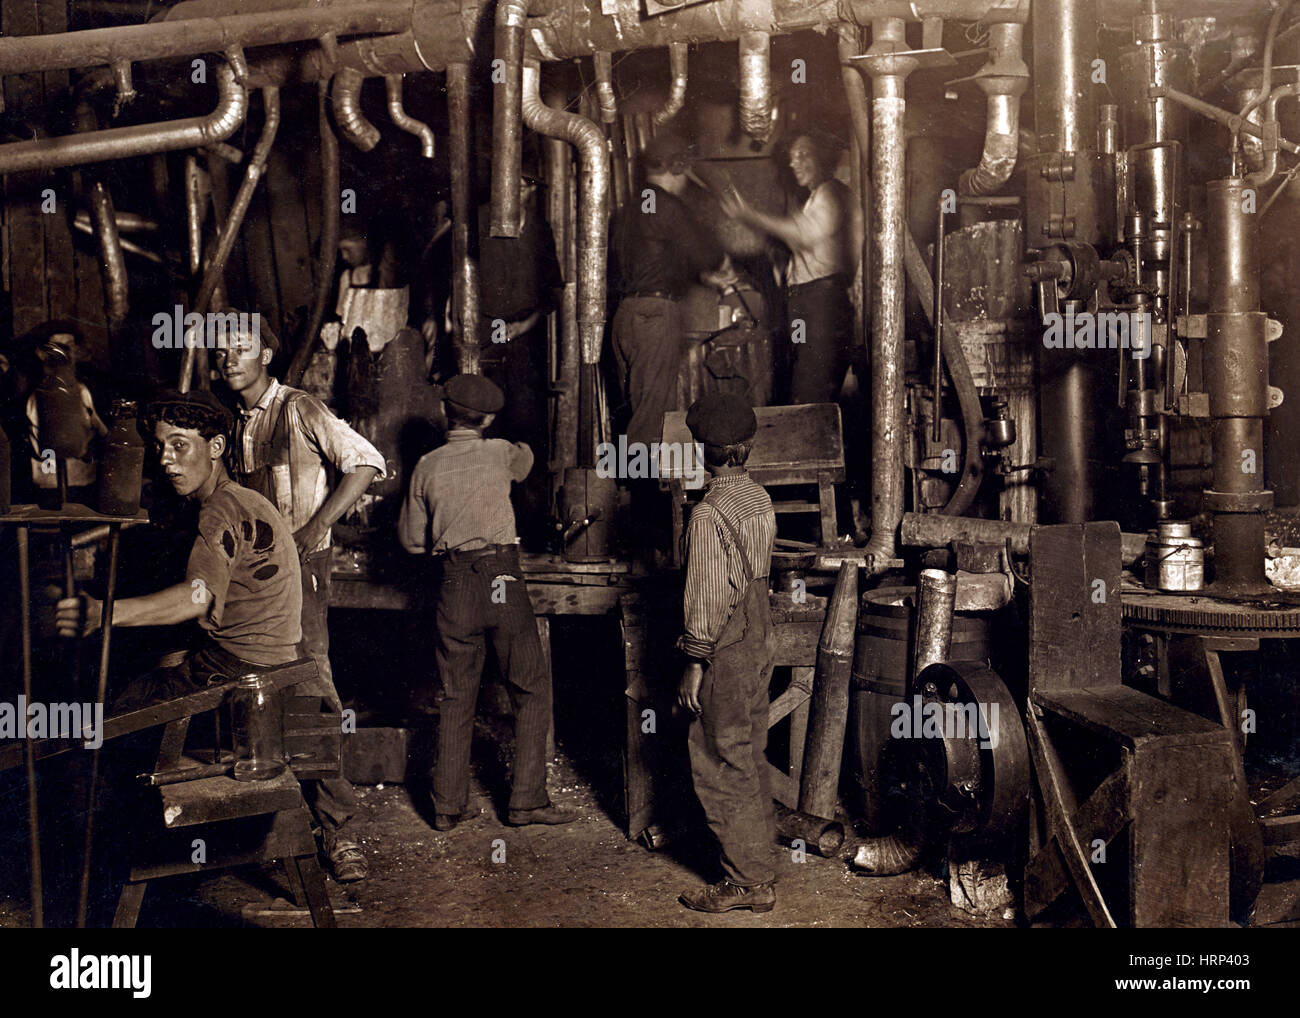 Indiana Glass Works, Boys and Men, 1908 - Stock Image